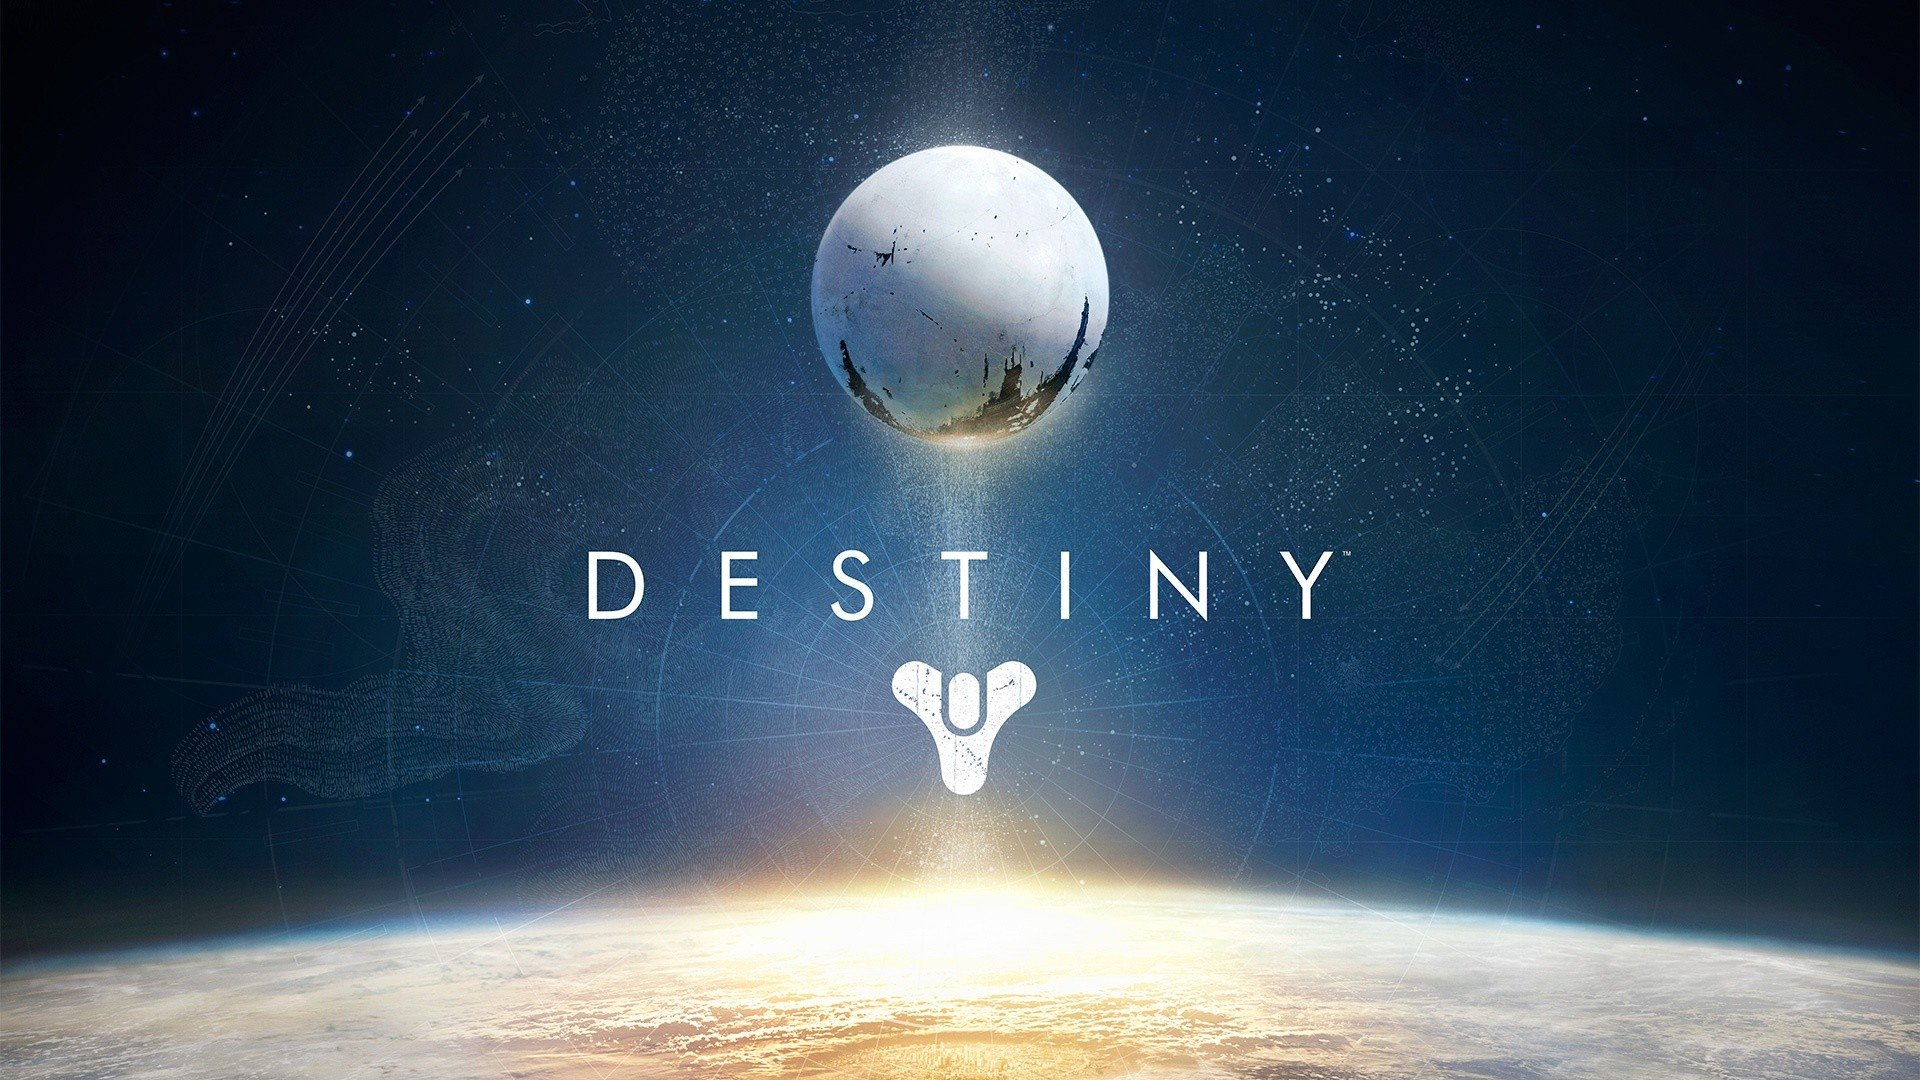 Destiny is one of the most anticipated releases of the past few years, let alone 2014. Prior to this, Bungie had spent nearly 15 years enmeshed in the world ...